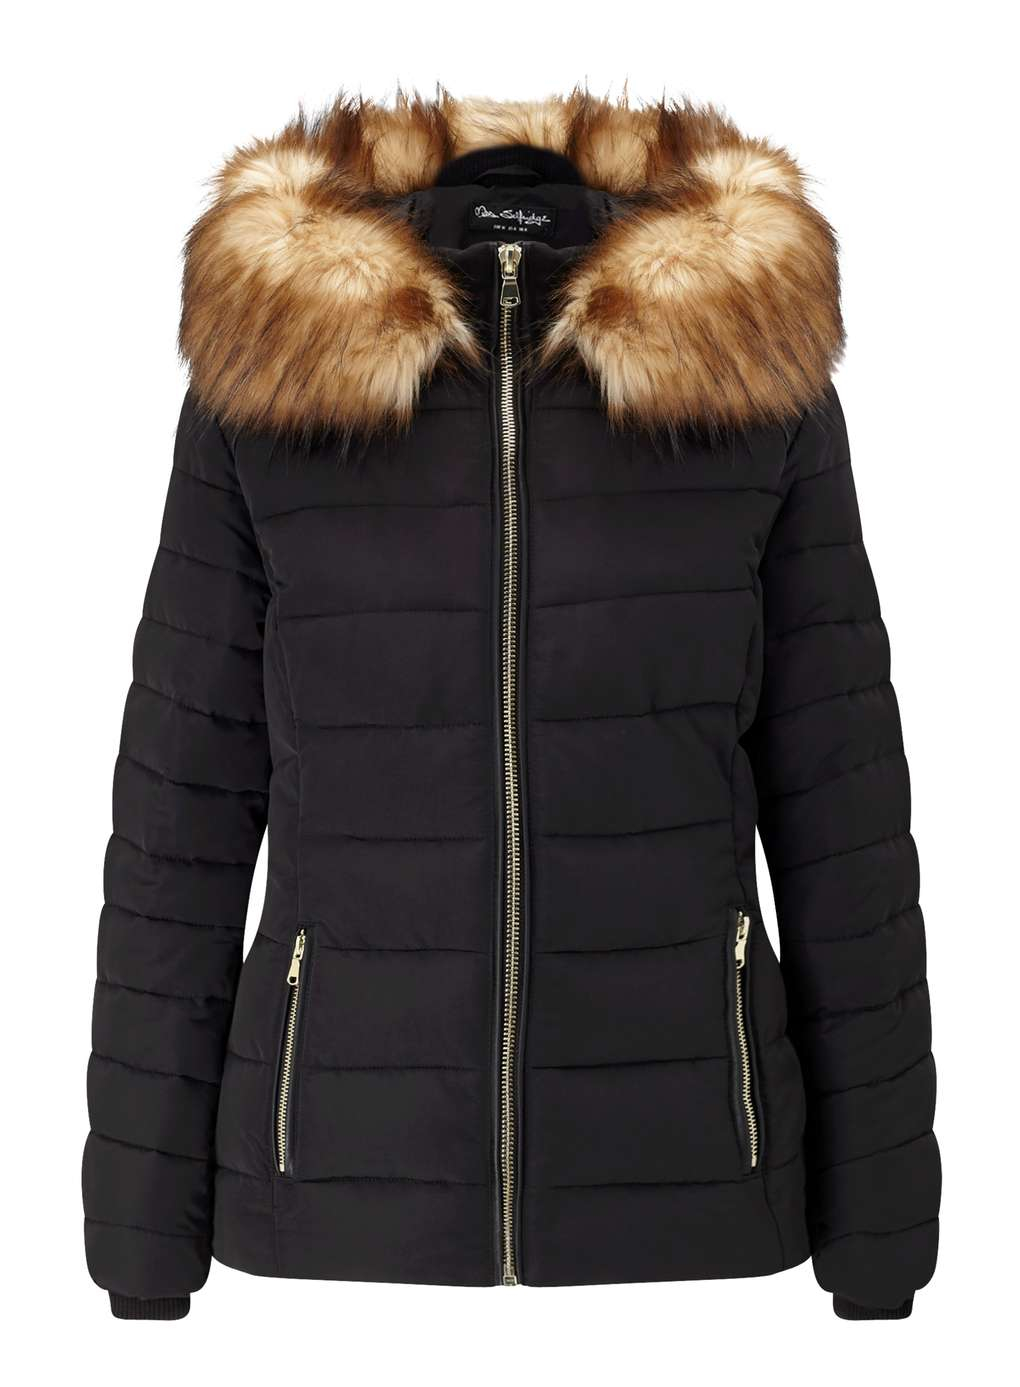 Find great deals on eBay for black puffy coat. Shop with confidence.